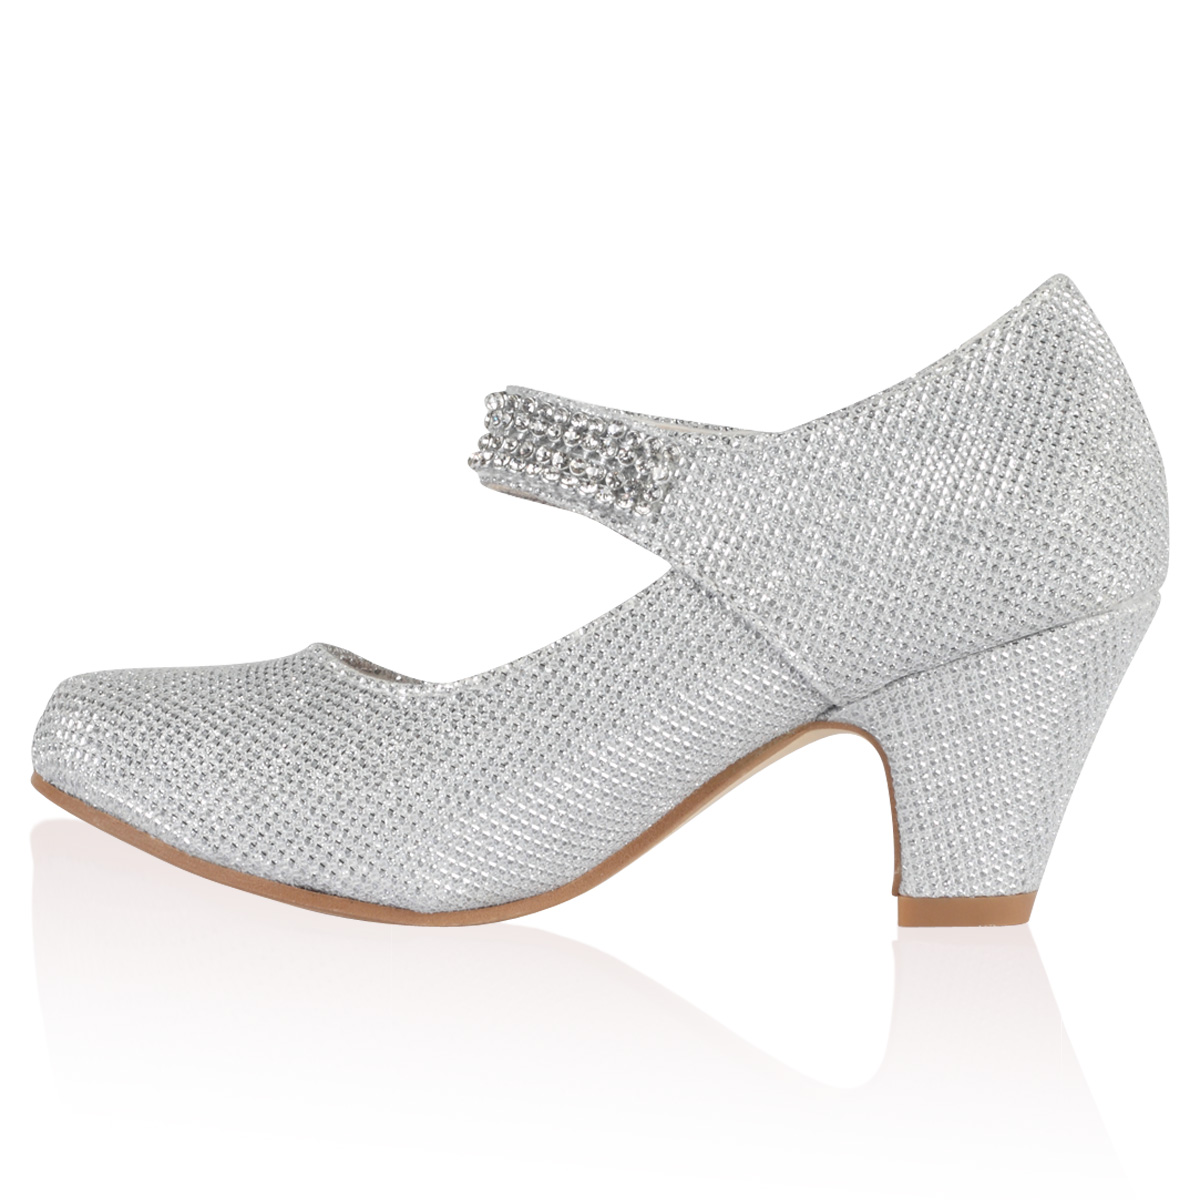 Silver Sparkly Low Heels - Is Heel